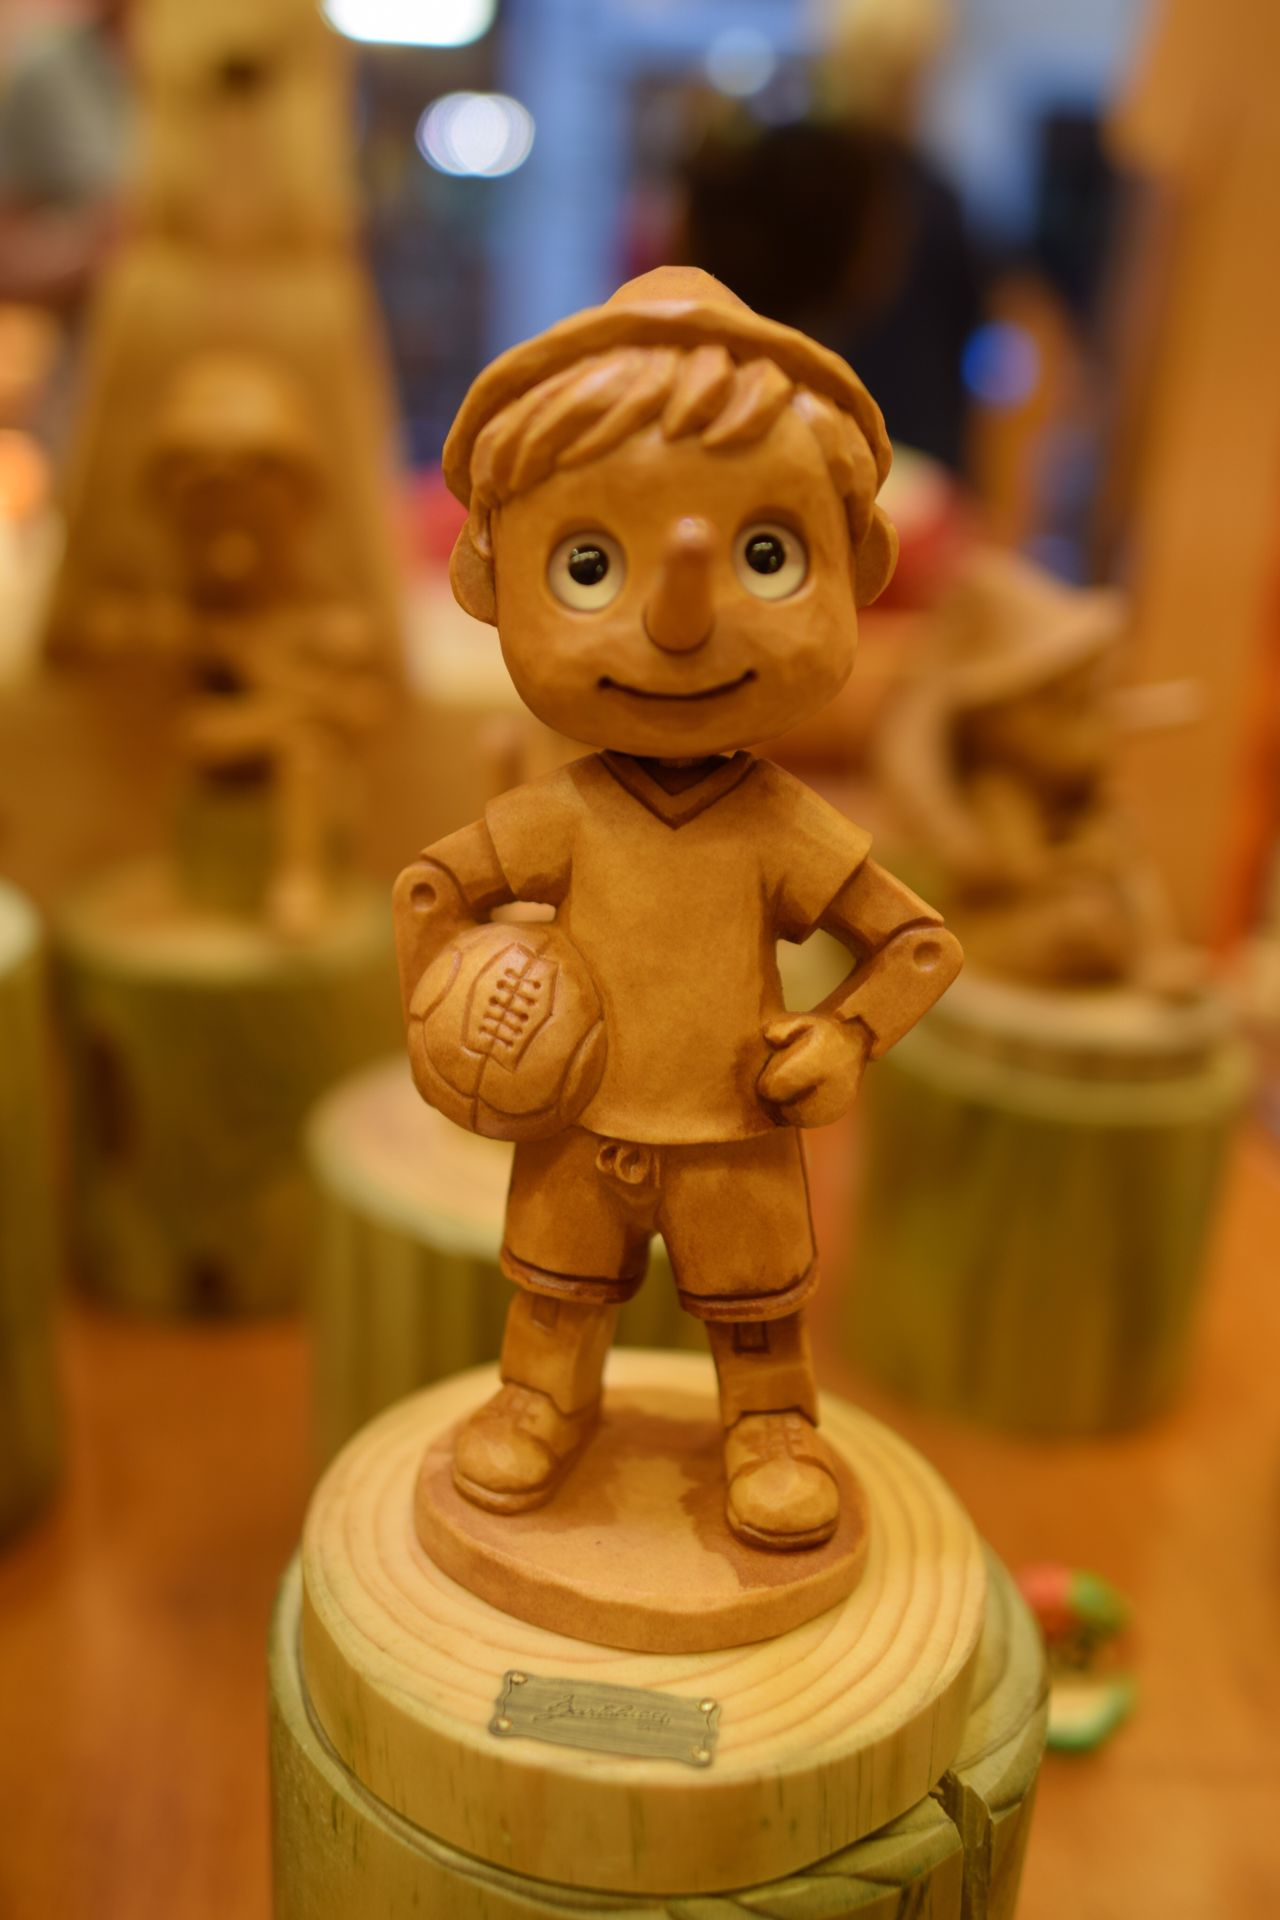 Indoors  Focus On Foreground Figurine  Close-up Art And Craft No People Table Sculpture Statue Childhood Day Pinochio EyeEm New Here Italy Florence